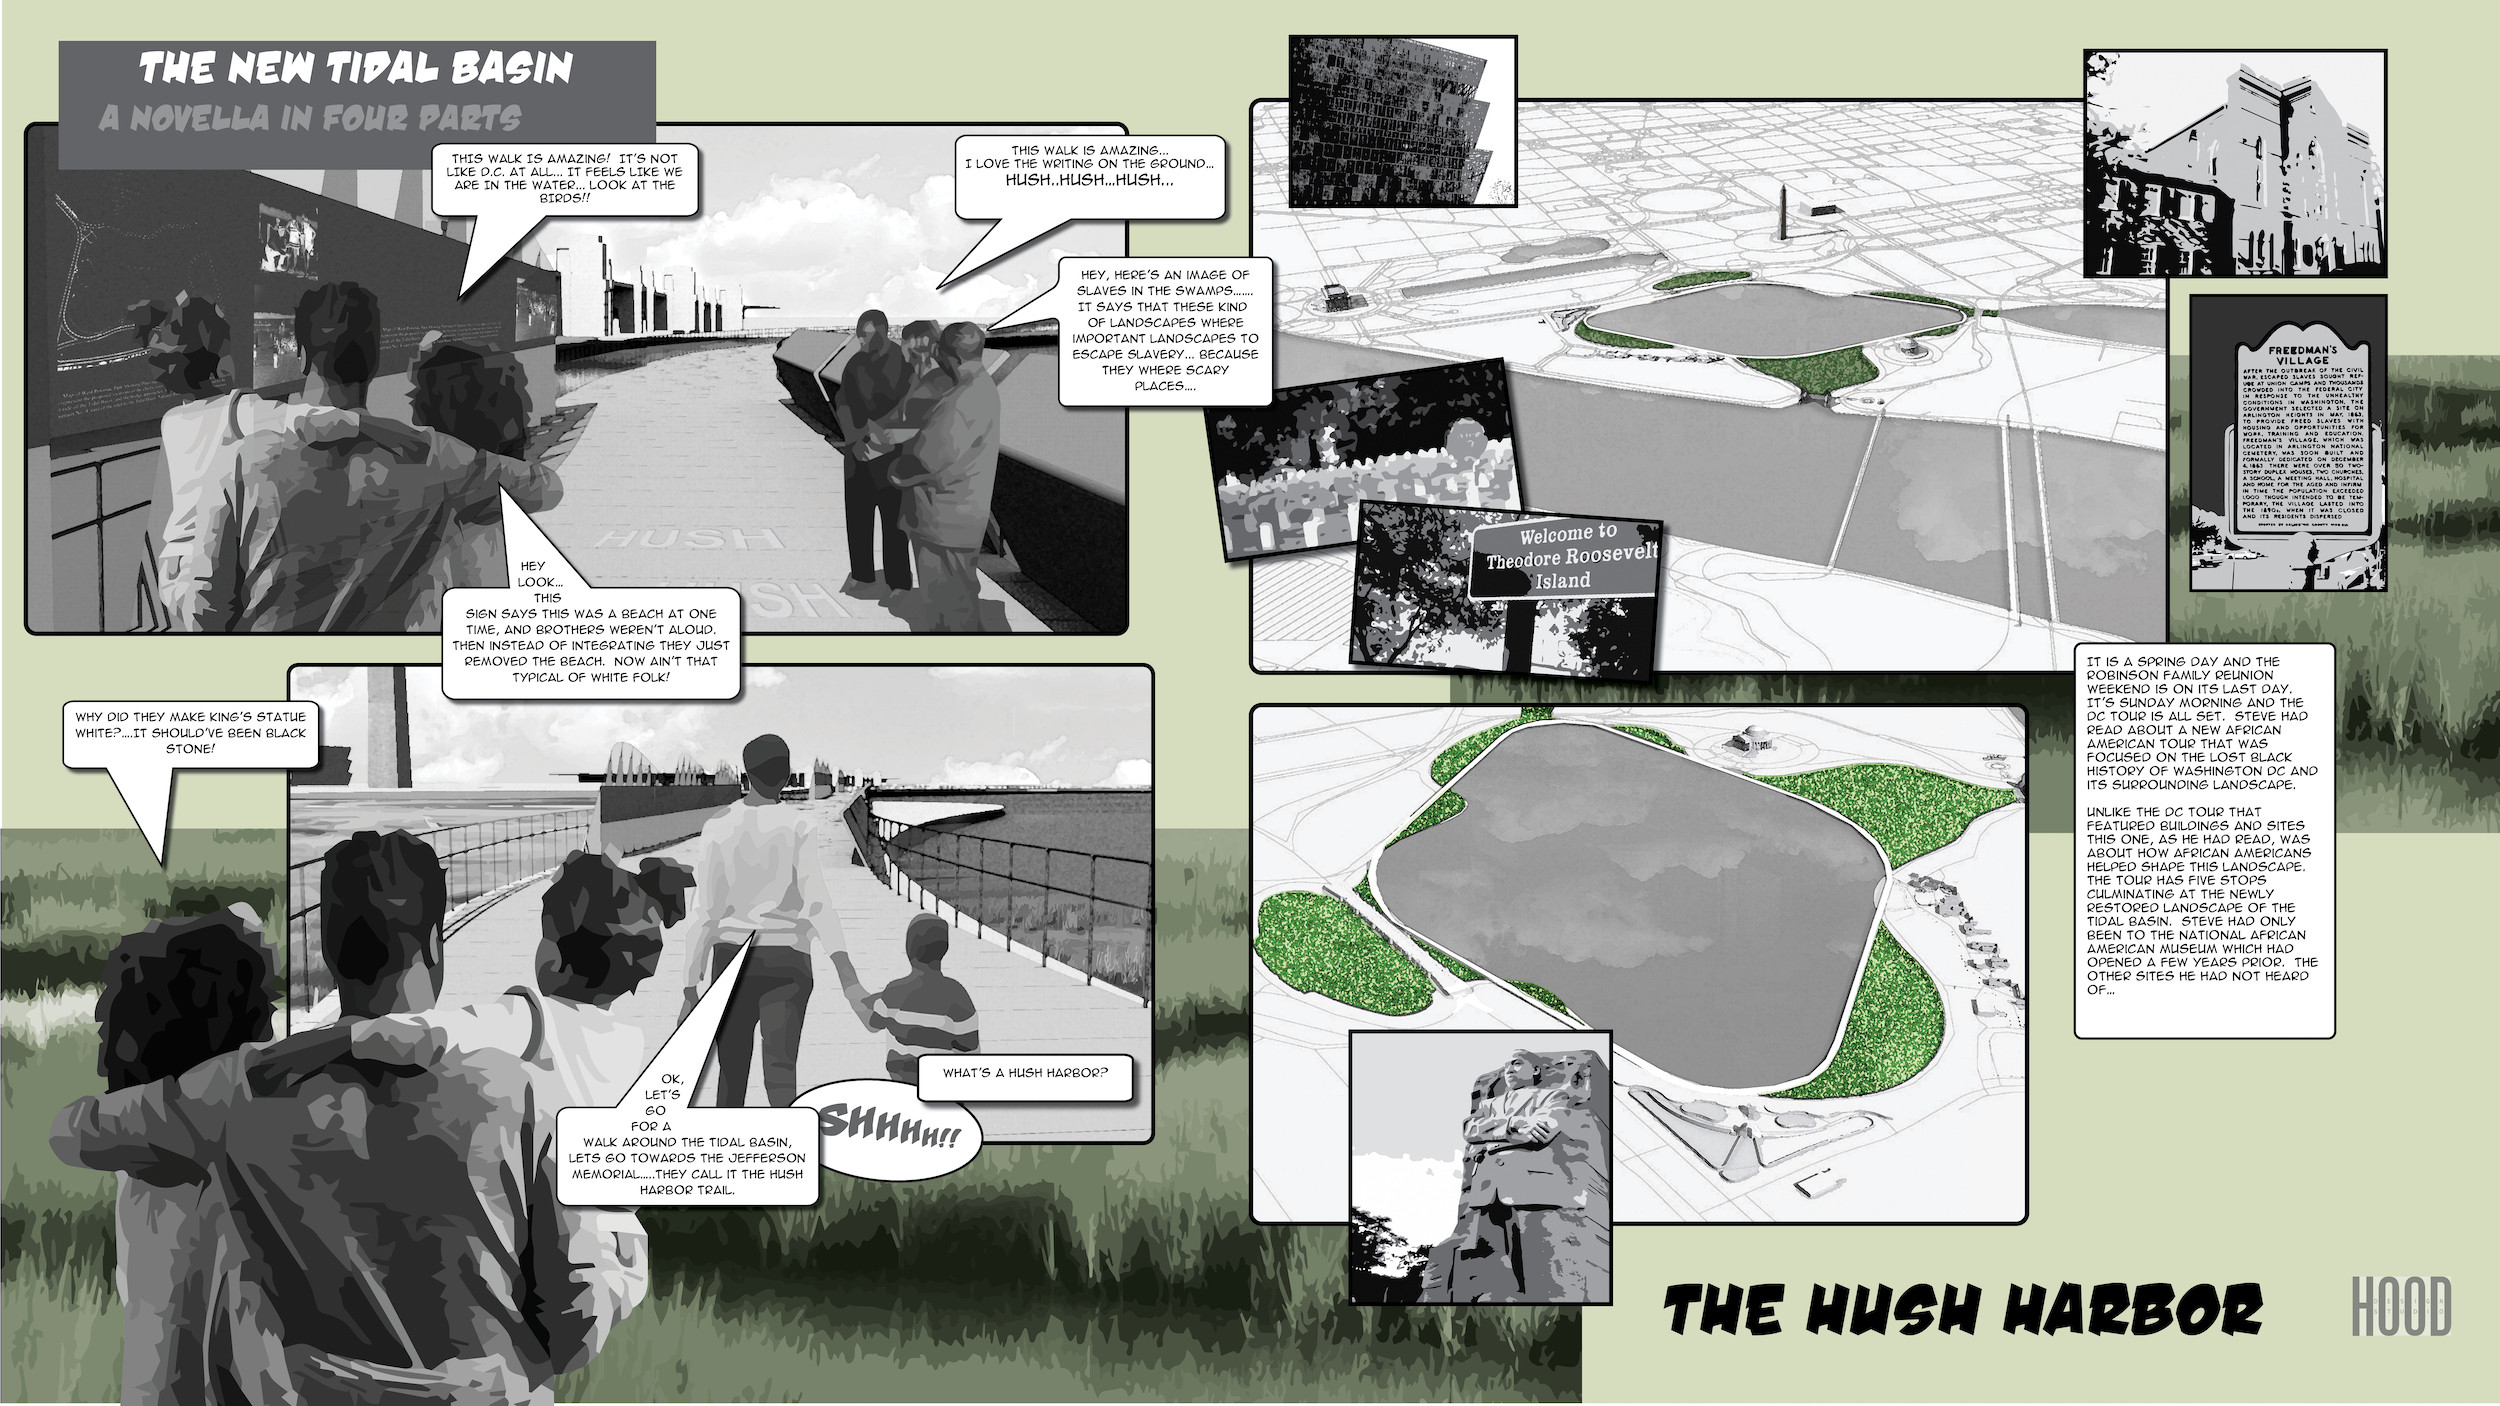 a page from a graphic novella about the future of the national mall tidal basin